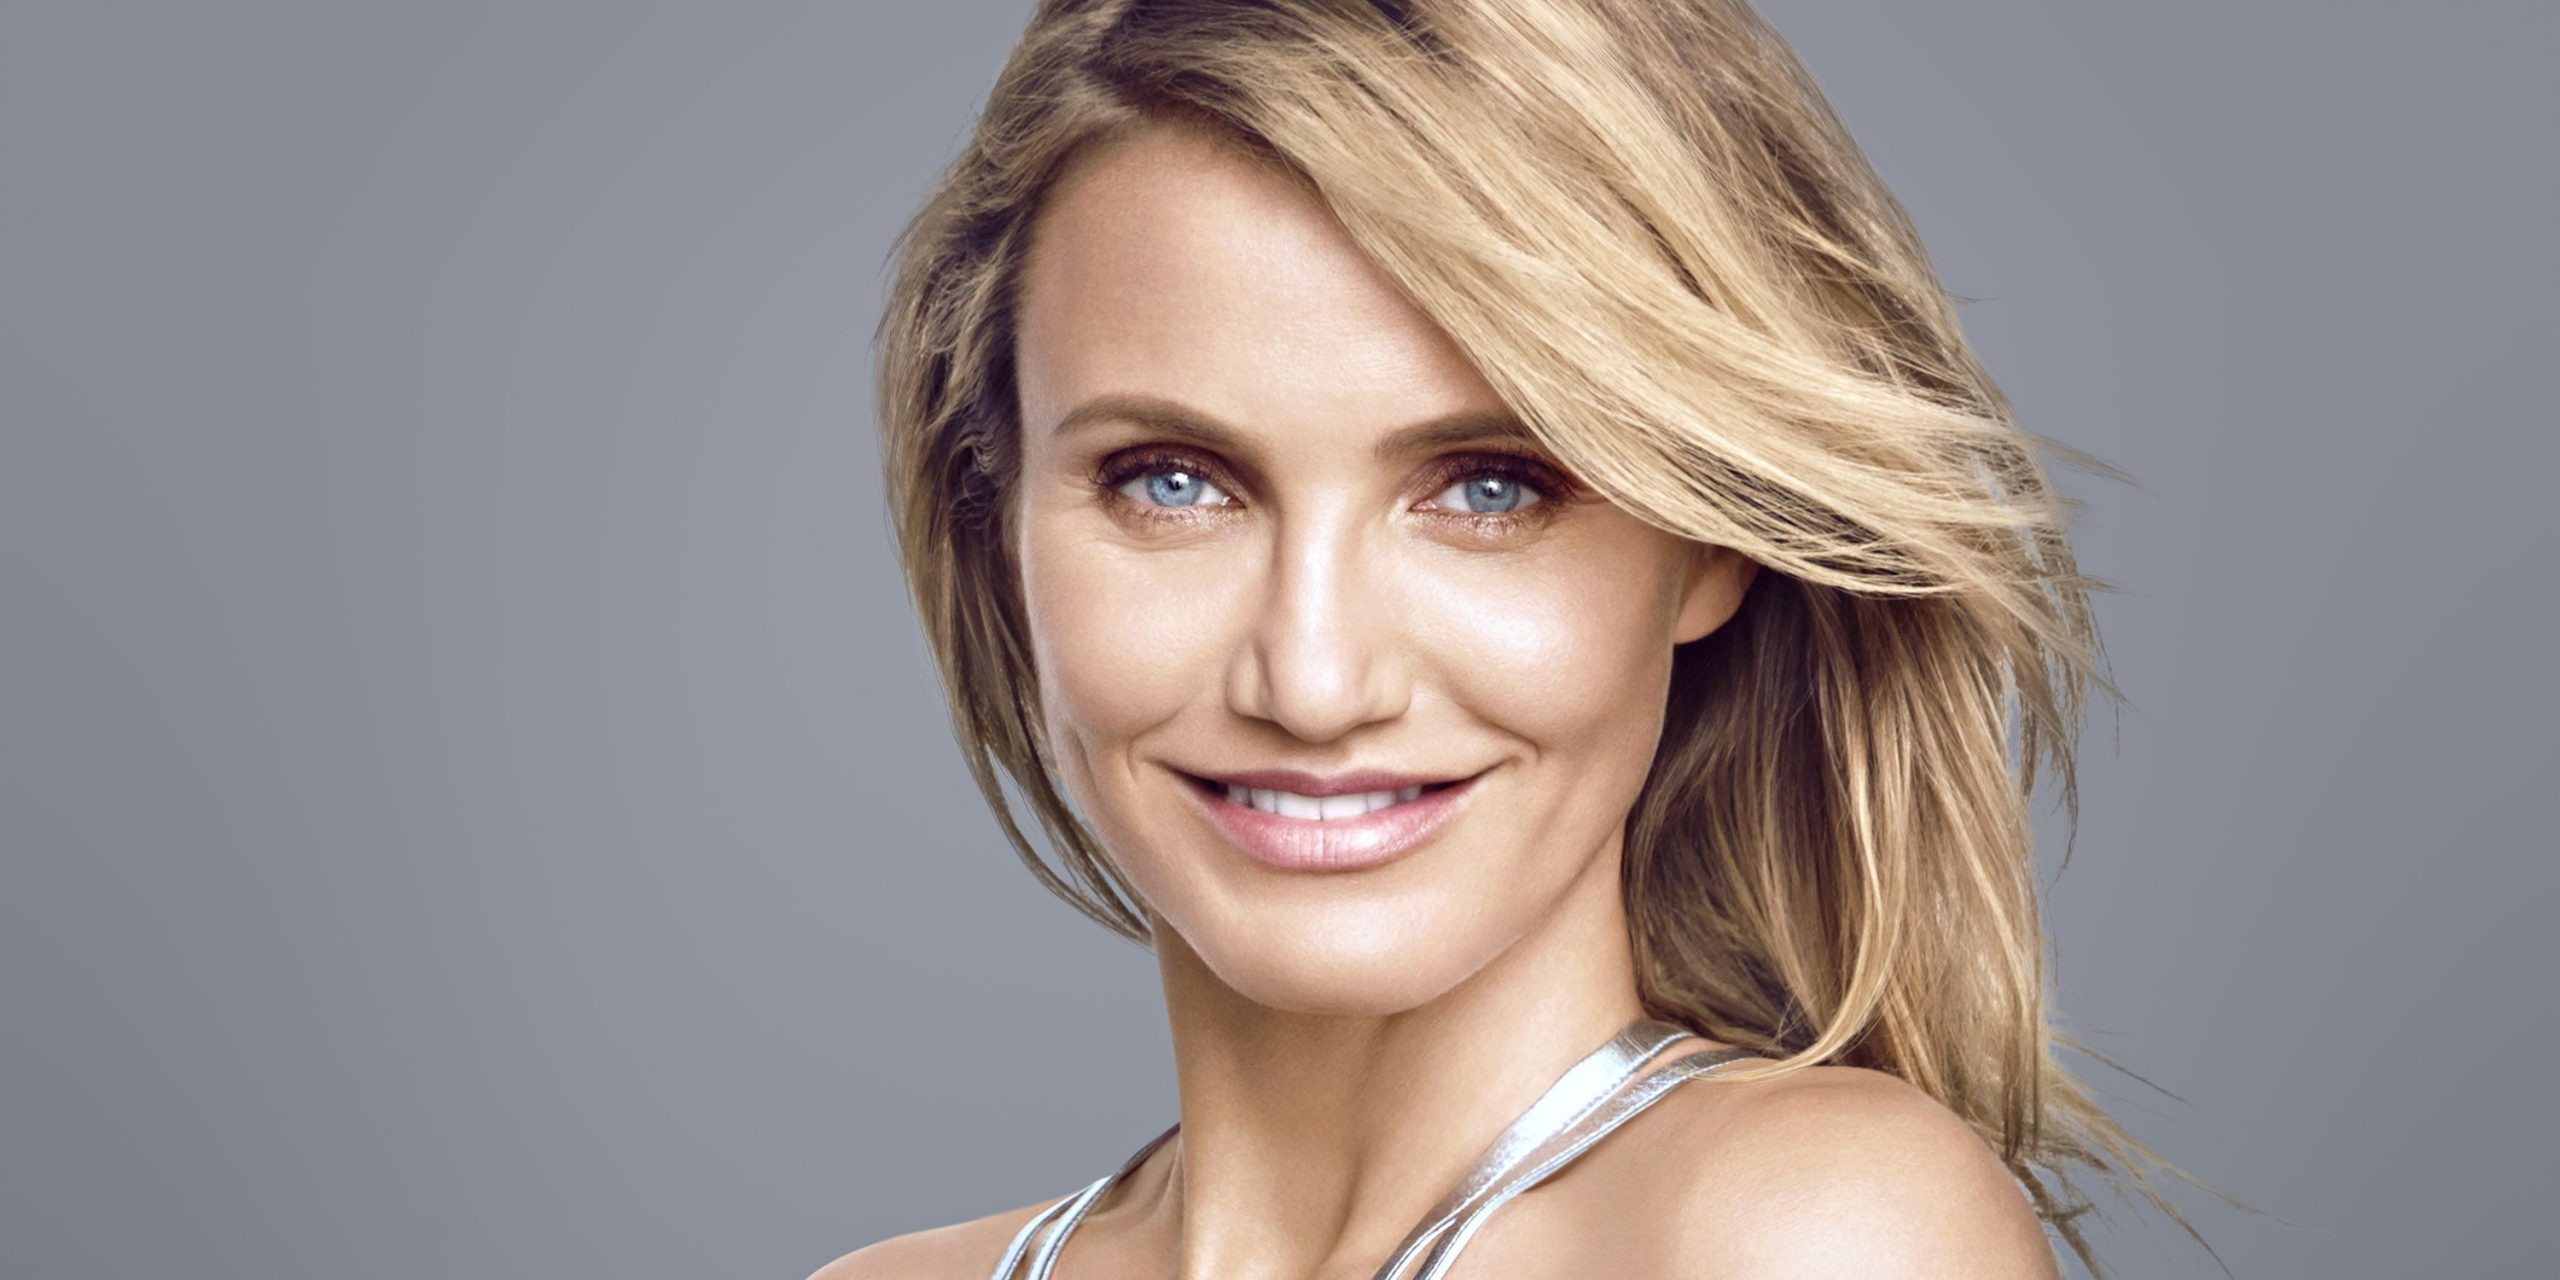 Cameron-Diaz-Wiki-Biography-Age-Height-Weight-Profile-Body Measurement